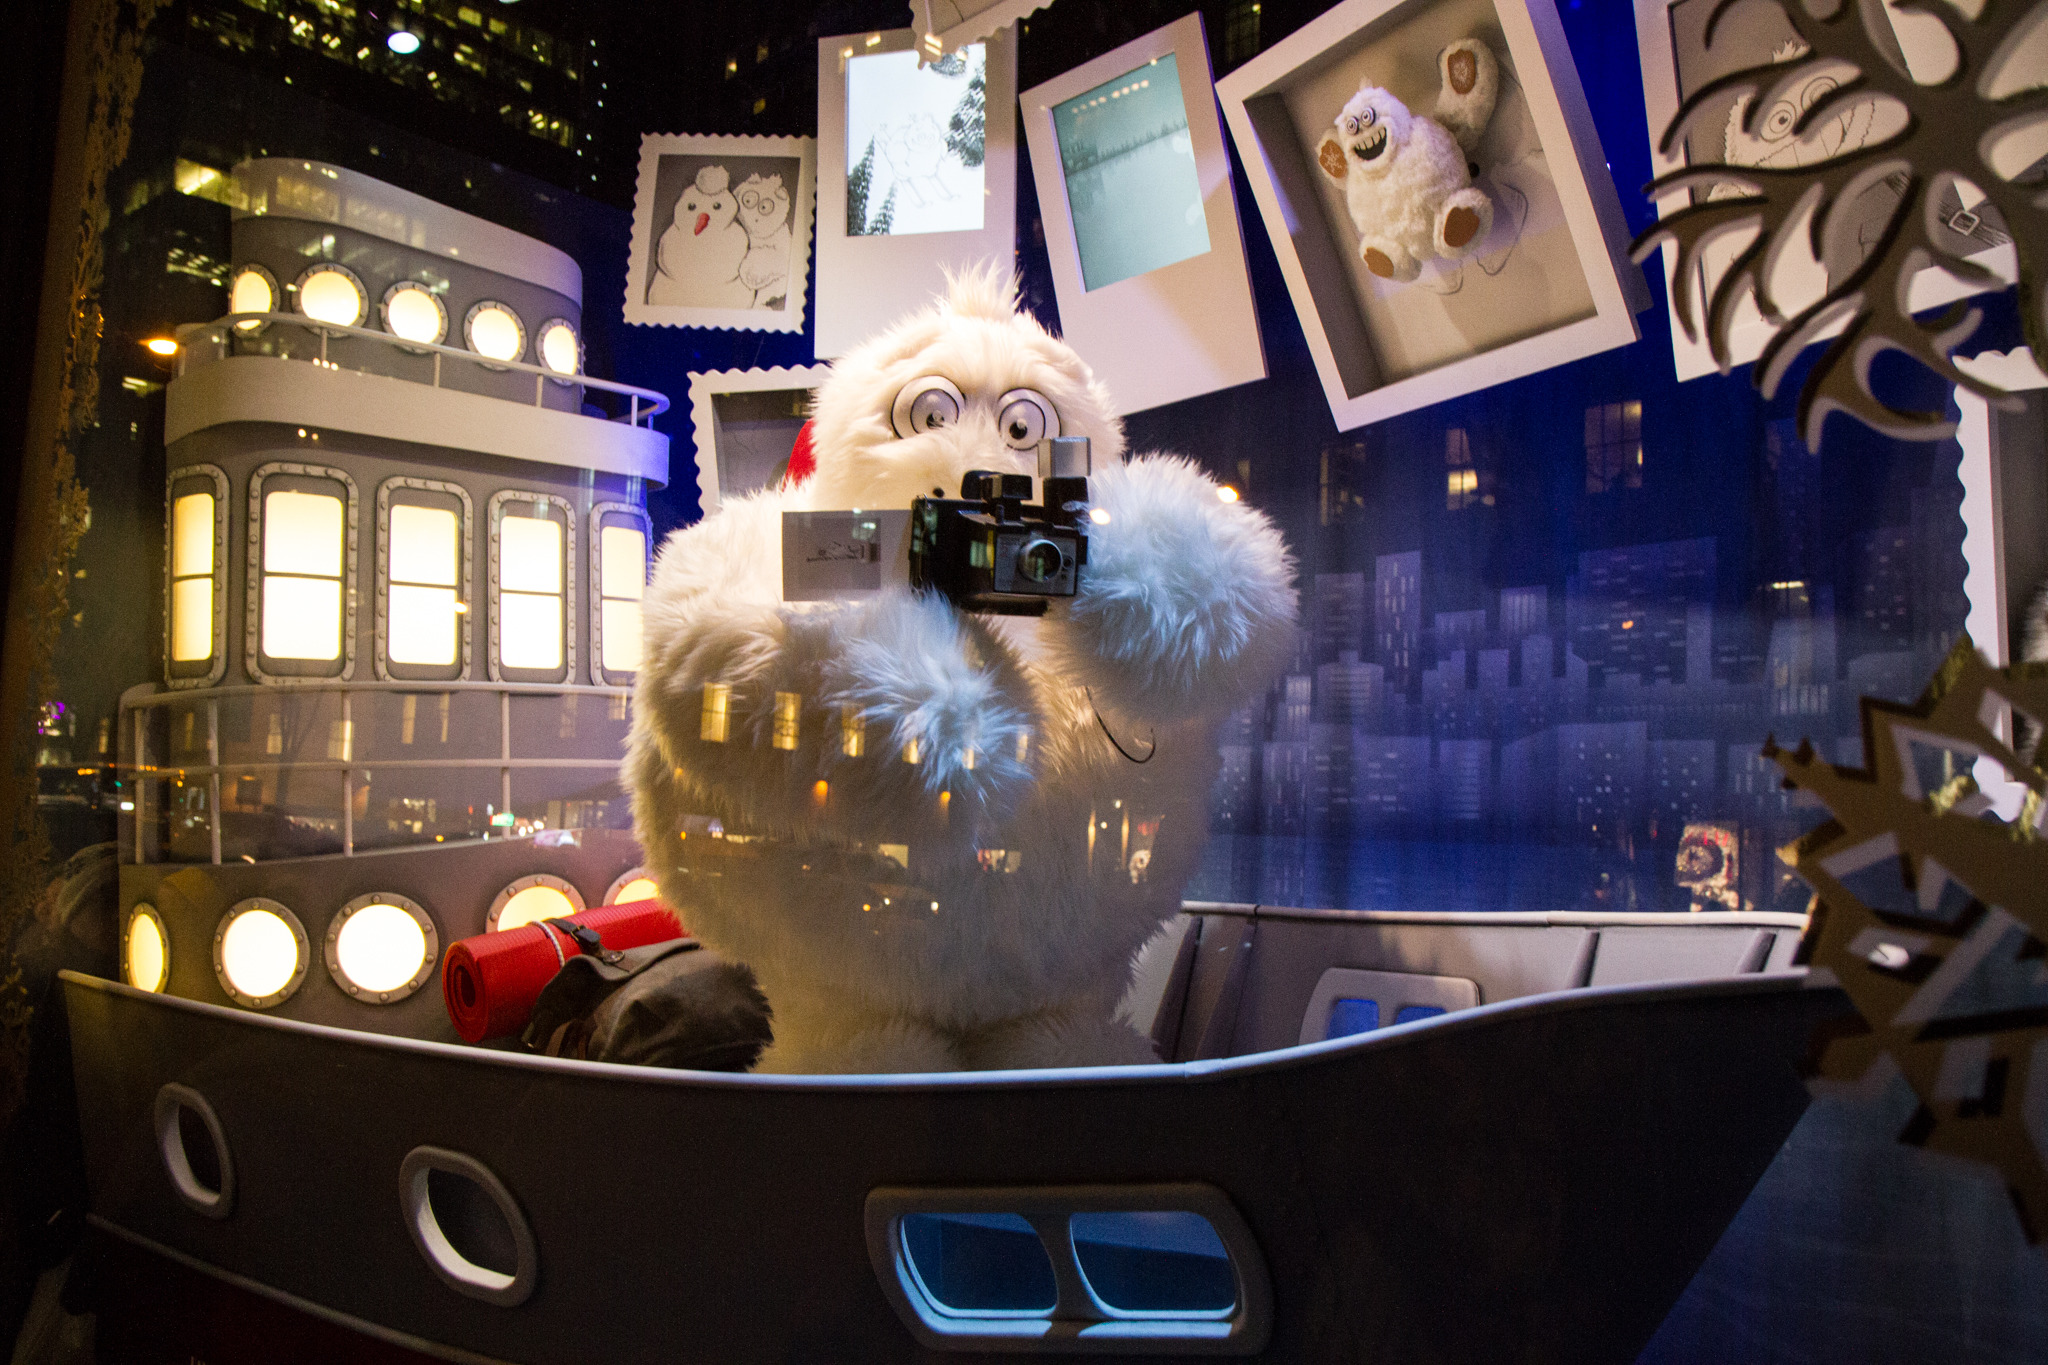 Where to find the best holiday windows